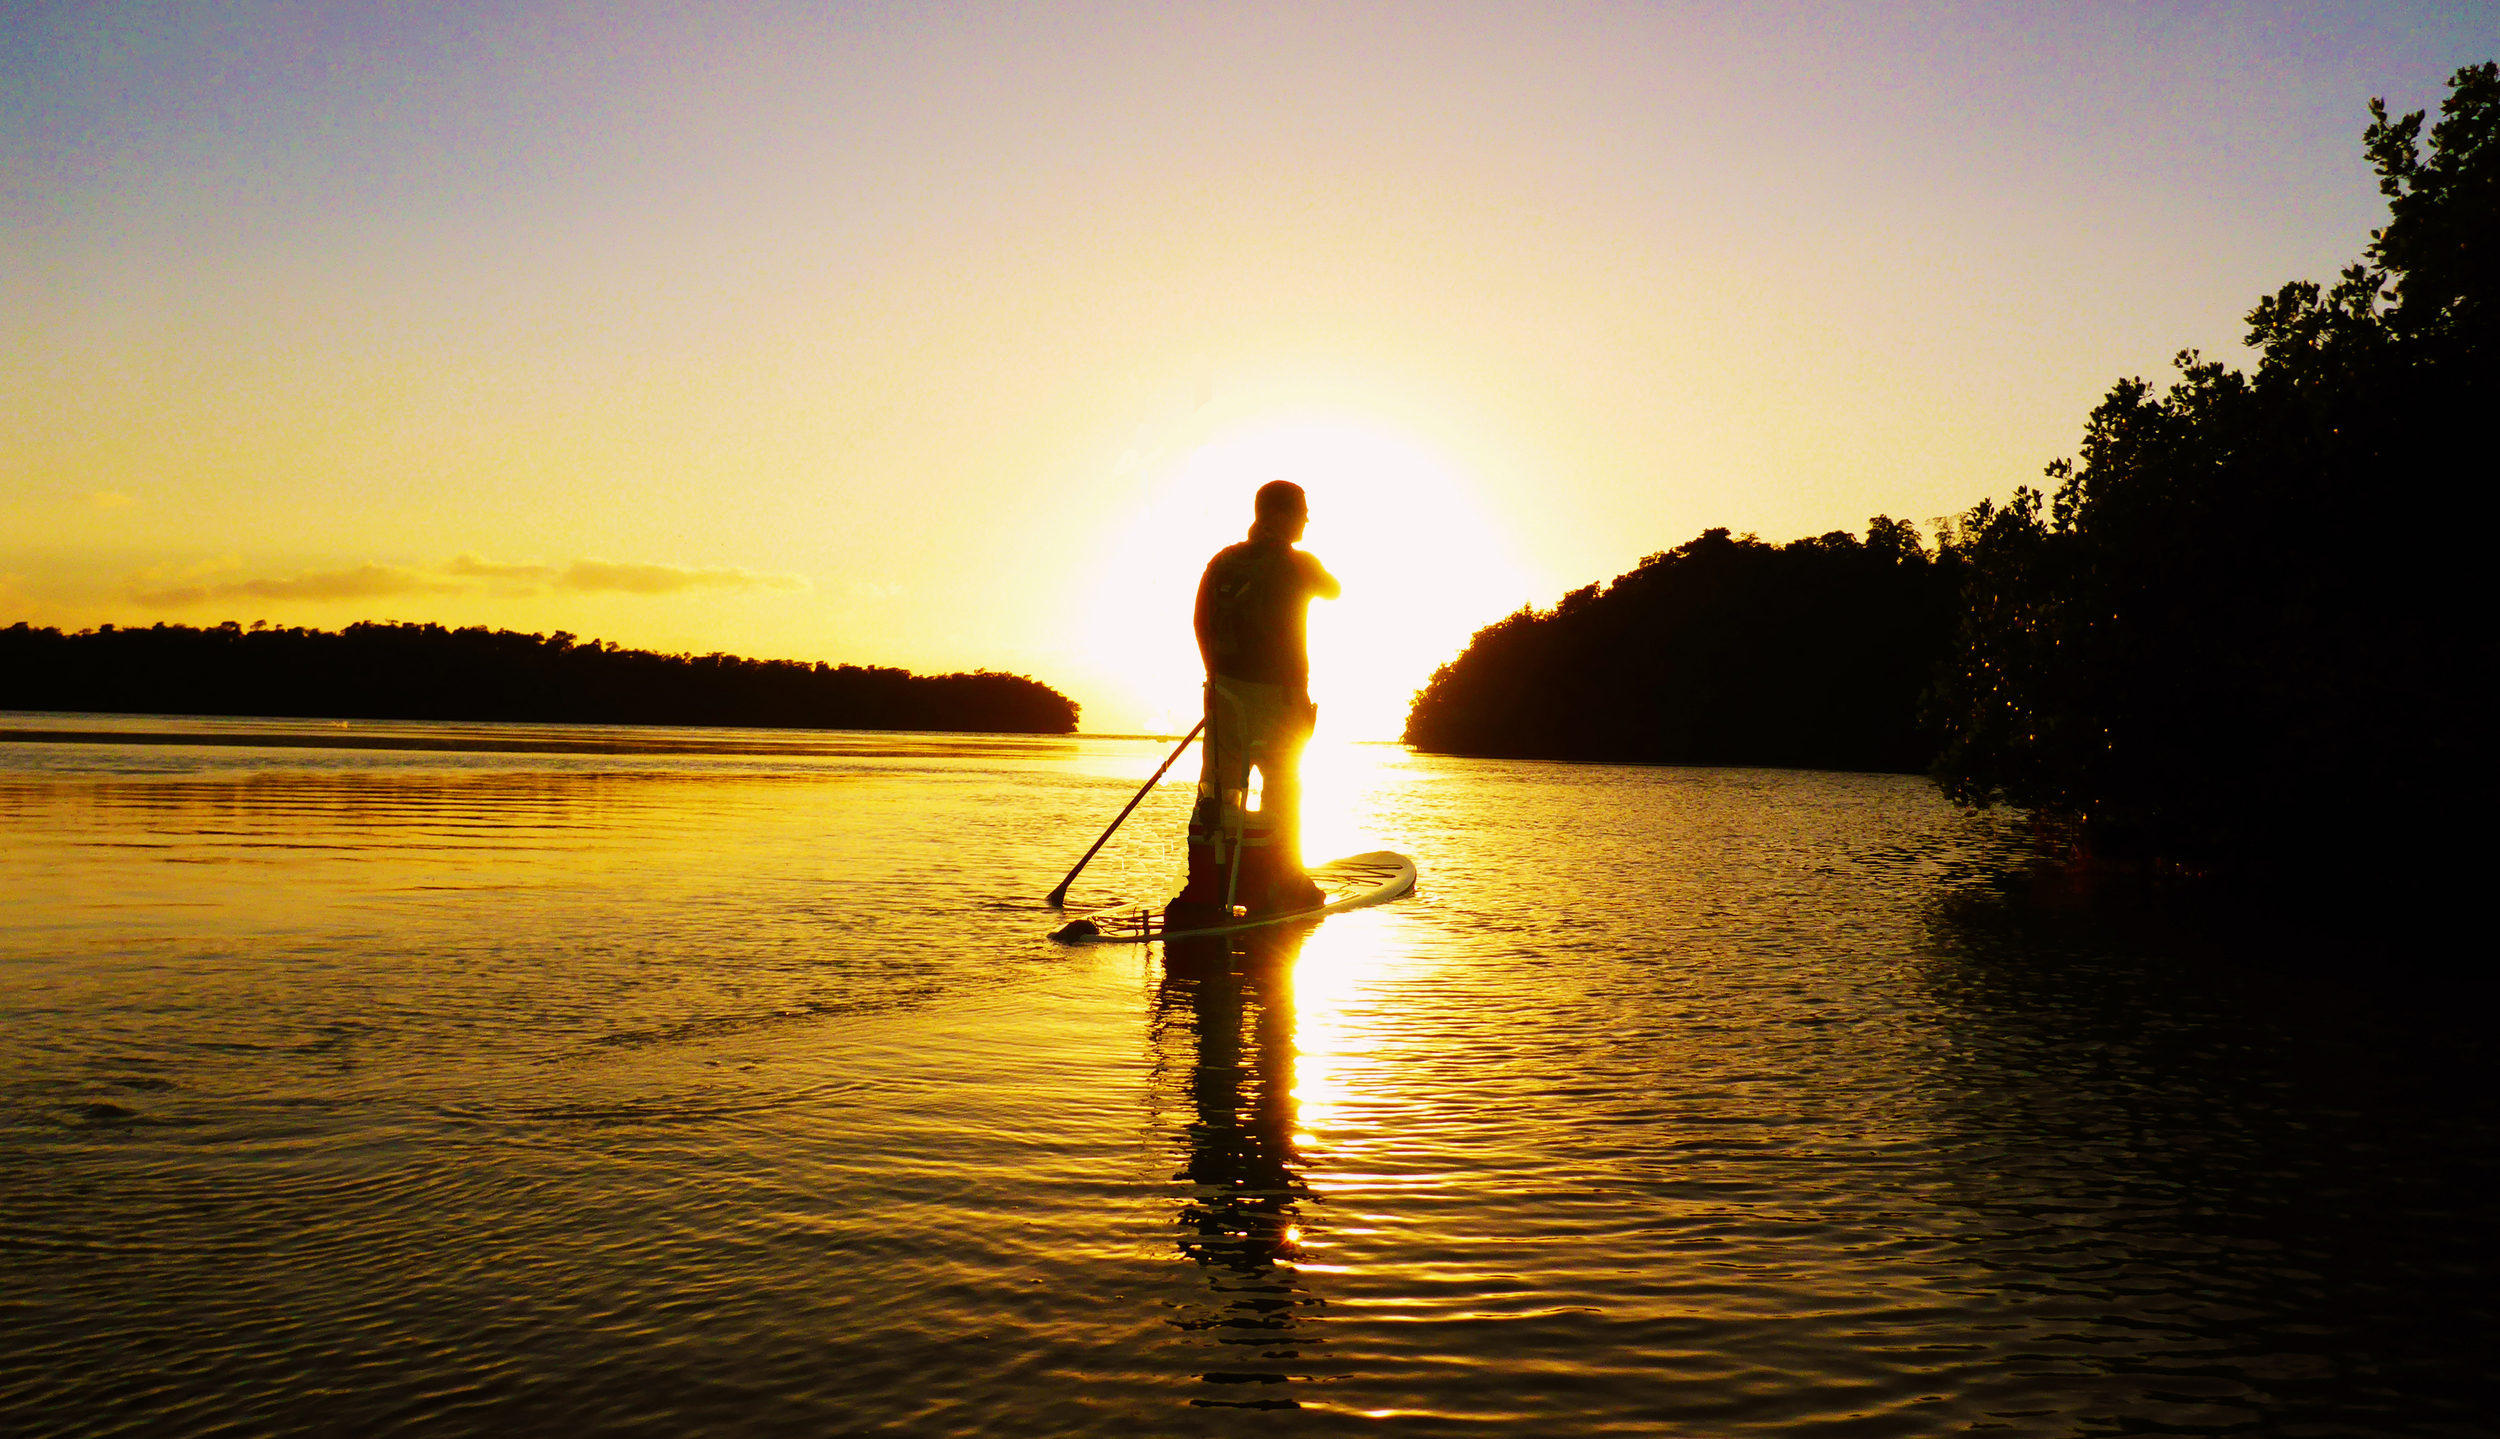 Trey Dyer enjoying a beautiful Florida sunset from atop his paddleboard